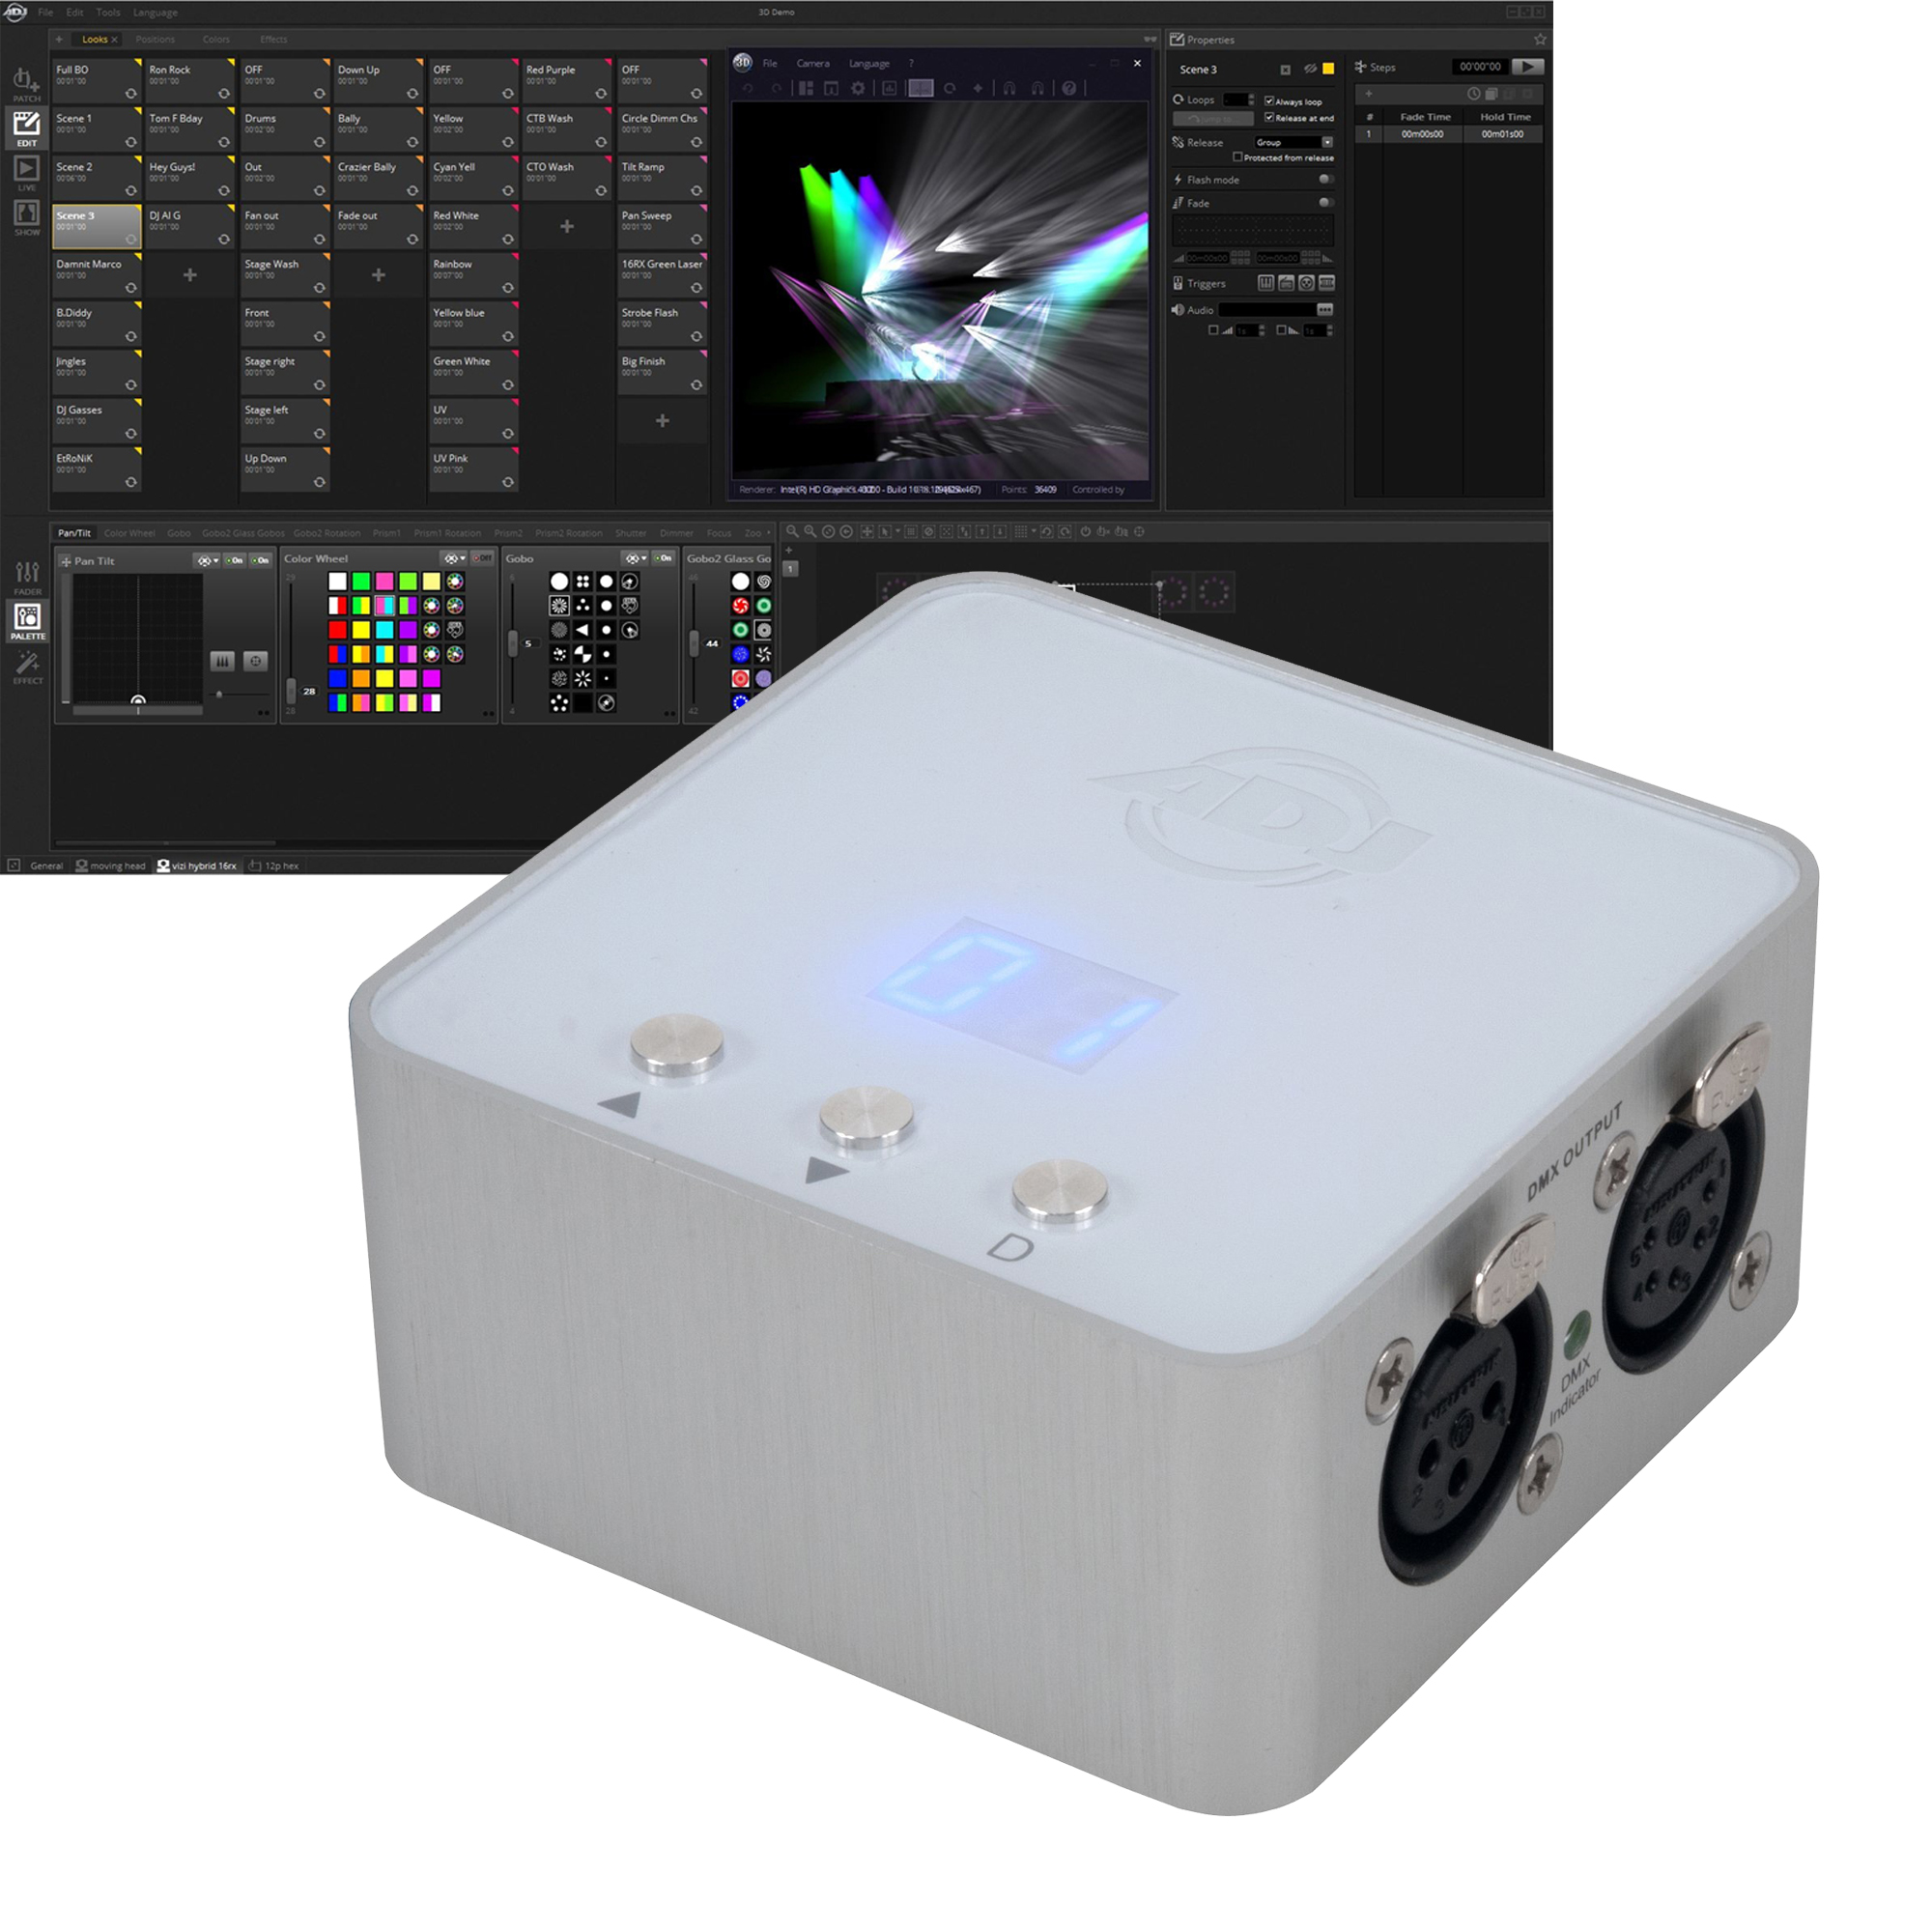 Details about American DJ MyDMX 3 0 DMX USB Lighting Interface Control  Hardware with Software